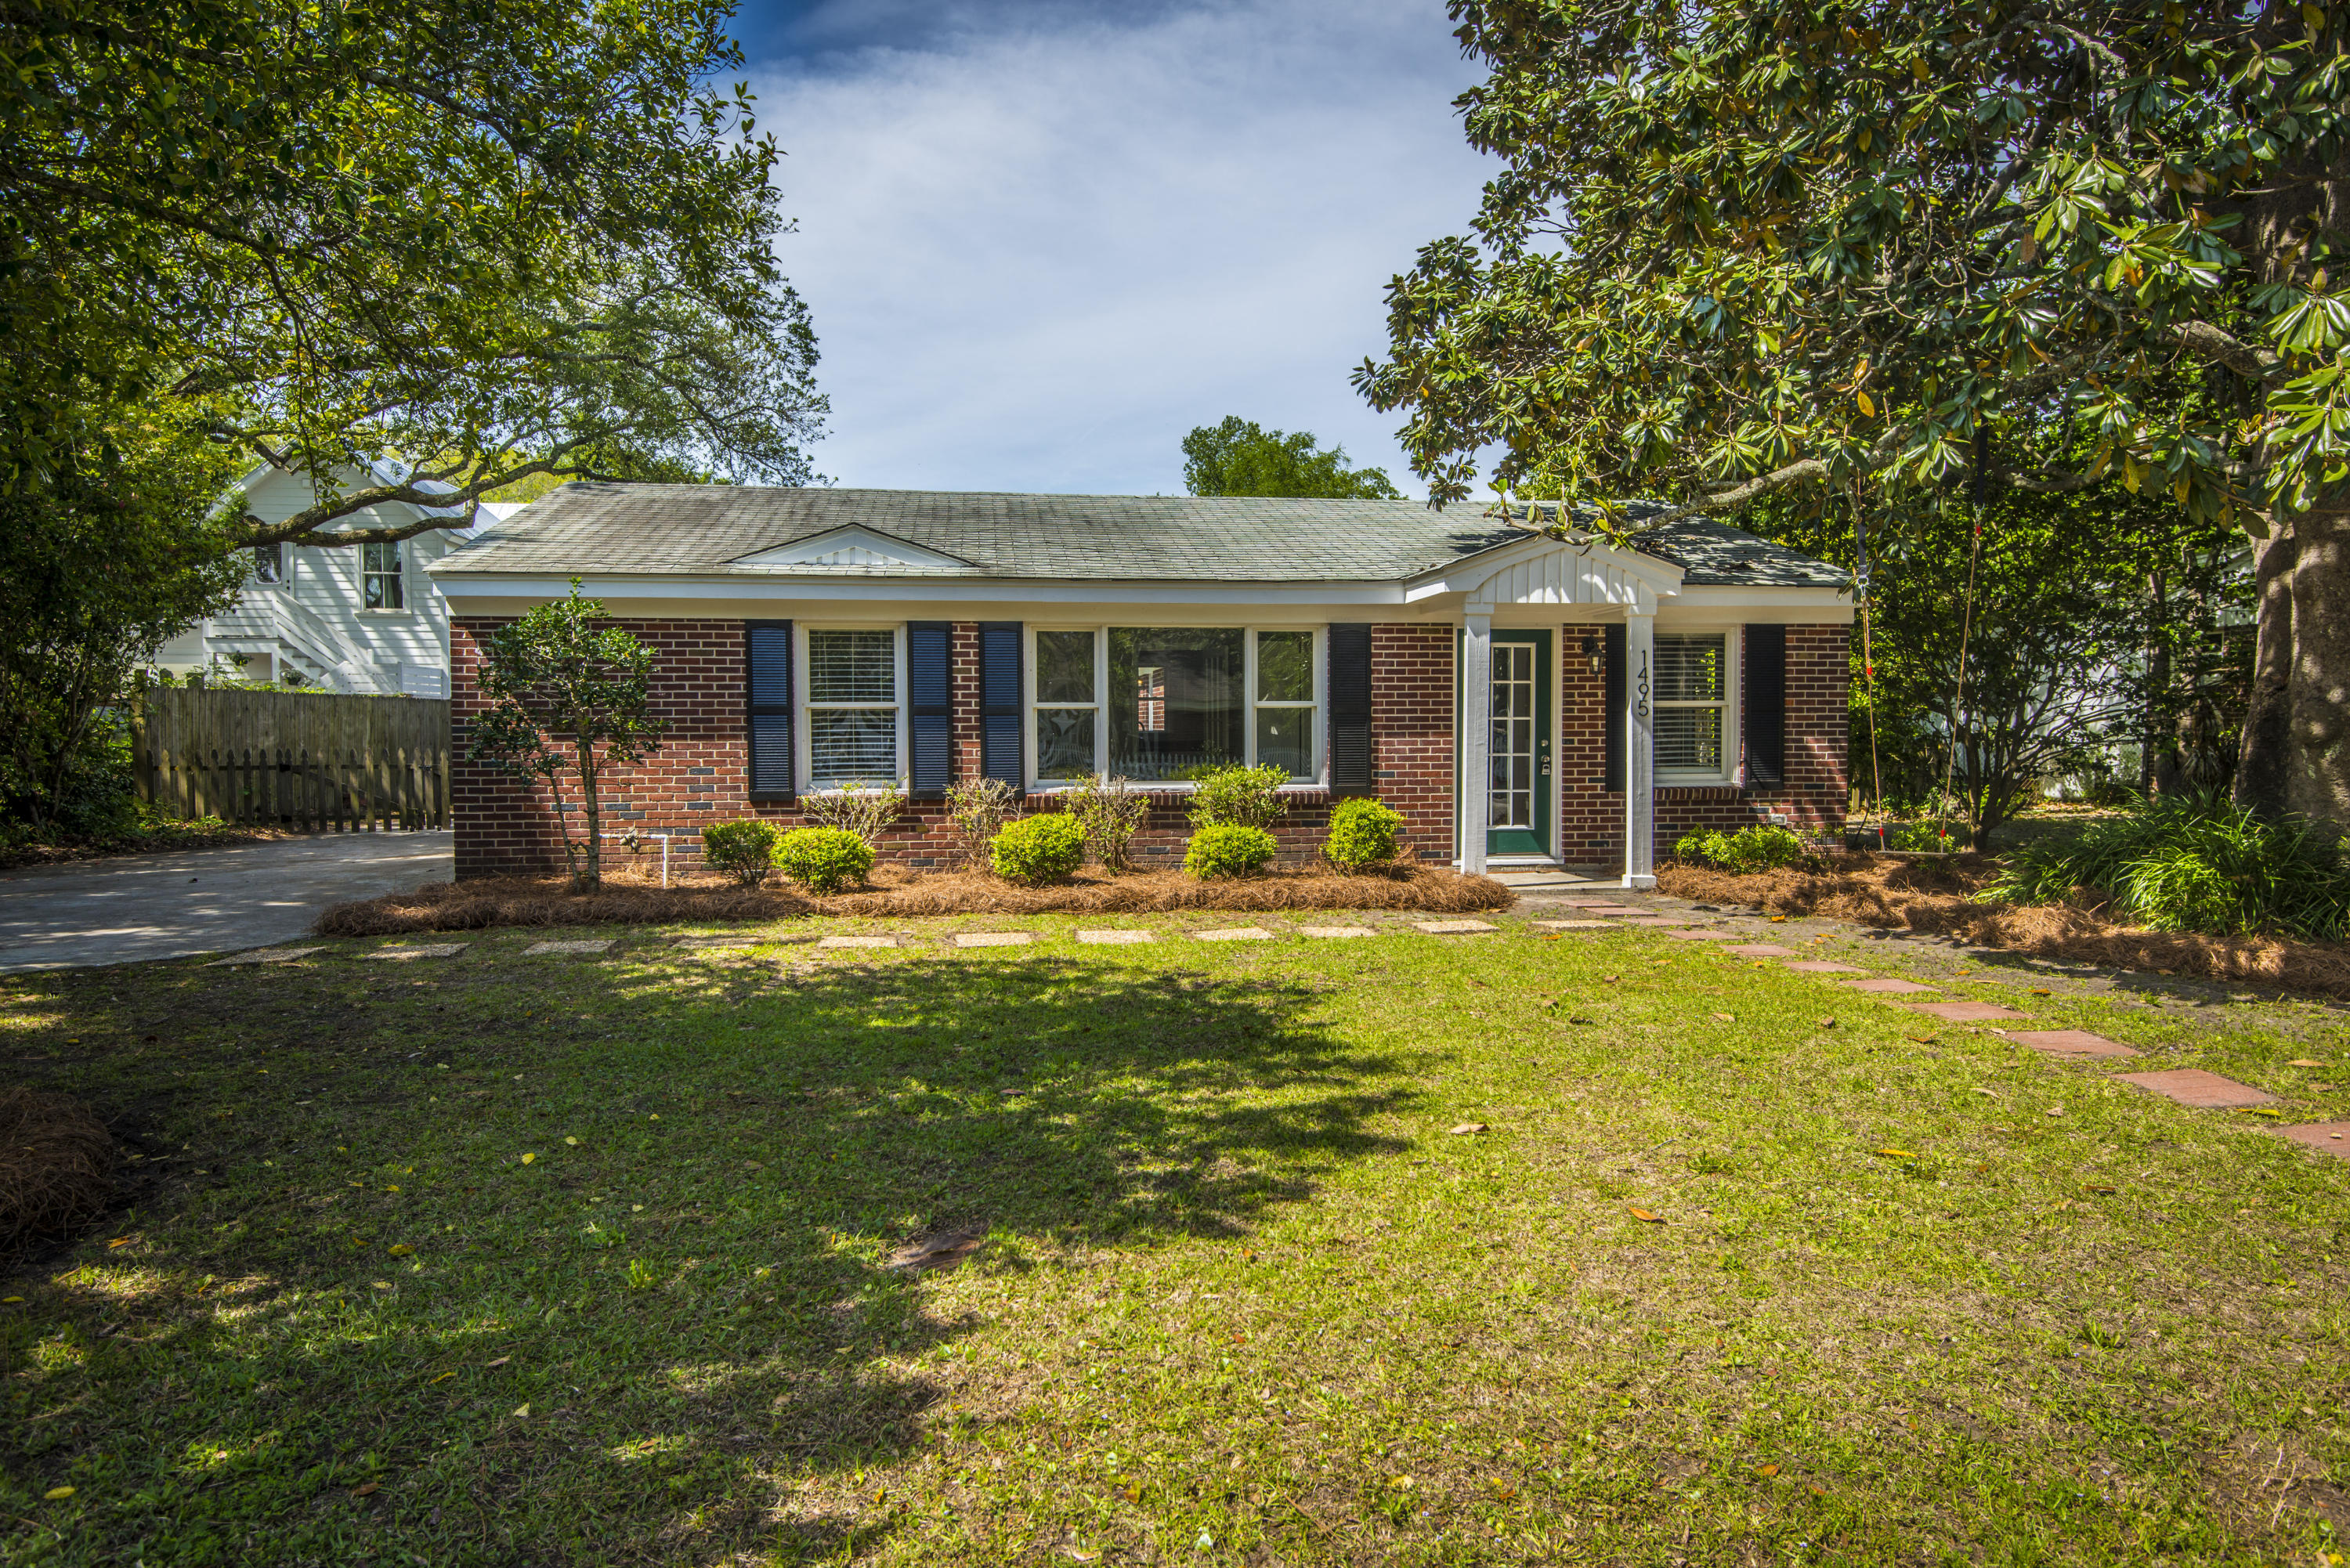 Old Mt Pleasant Homes For Sale - 1495 Indian, Mount Pleasant, SC - 12